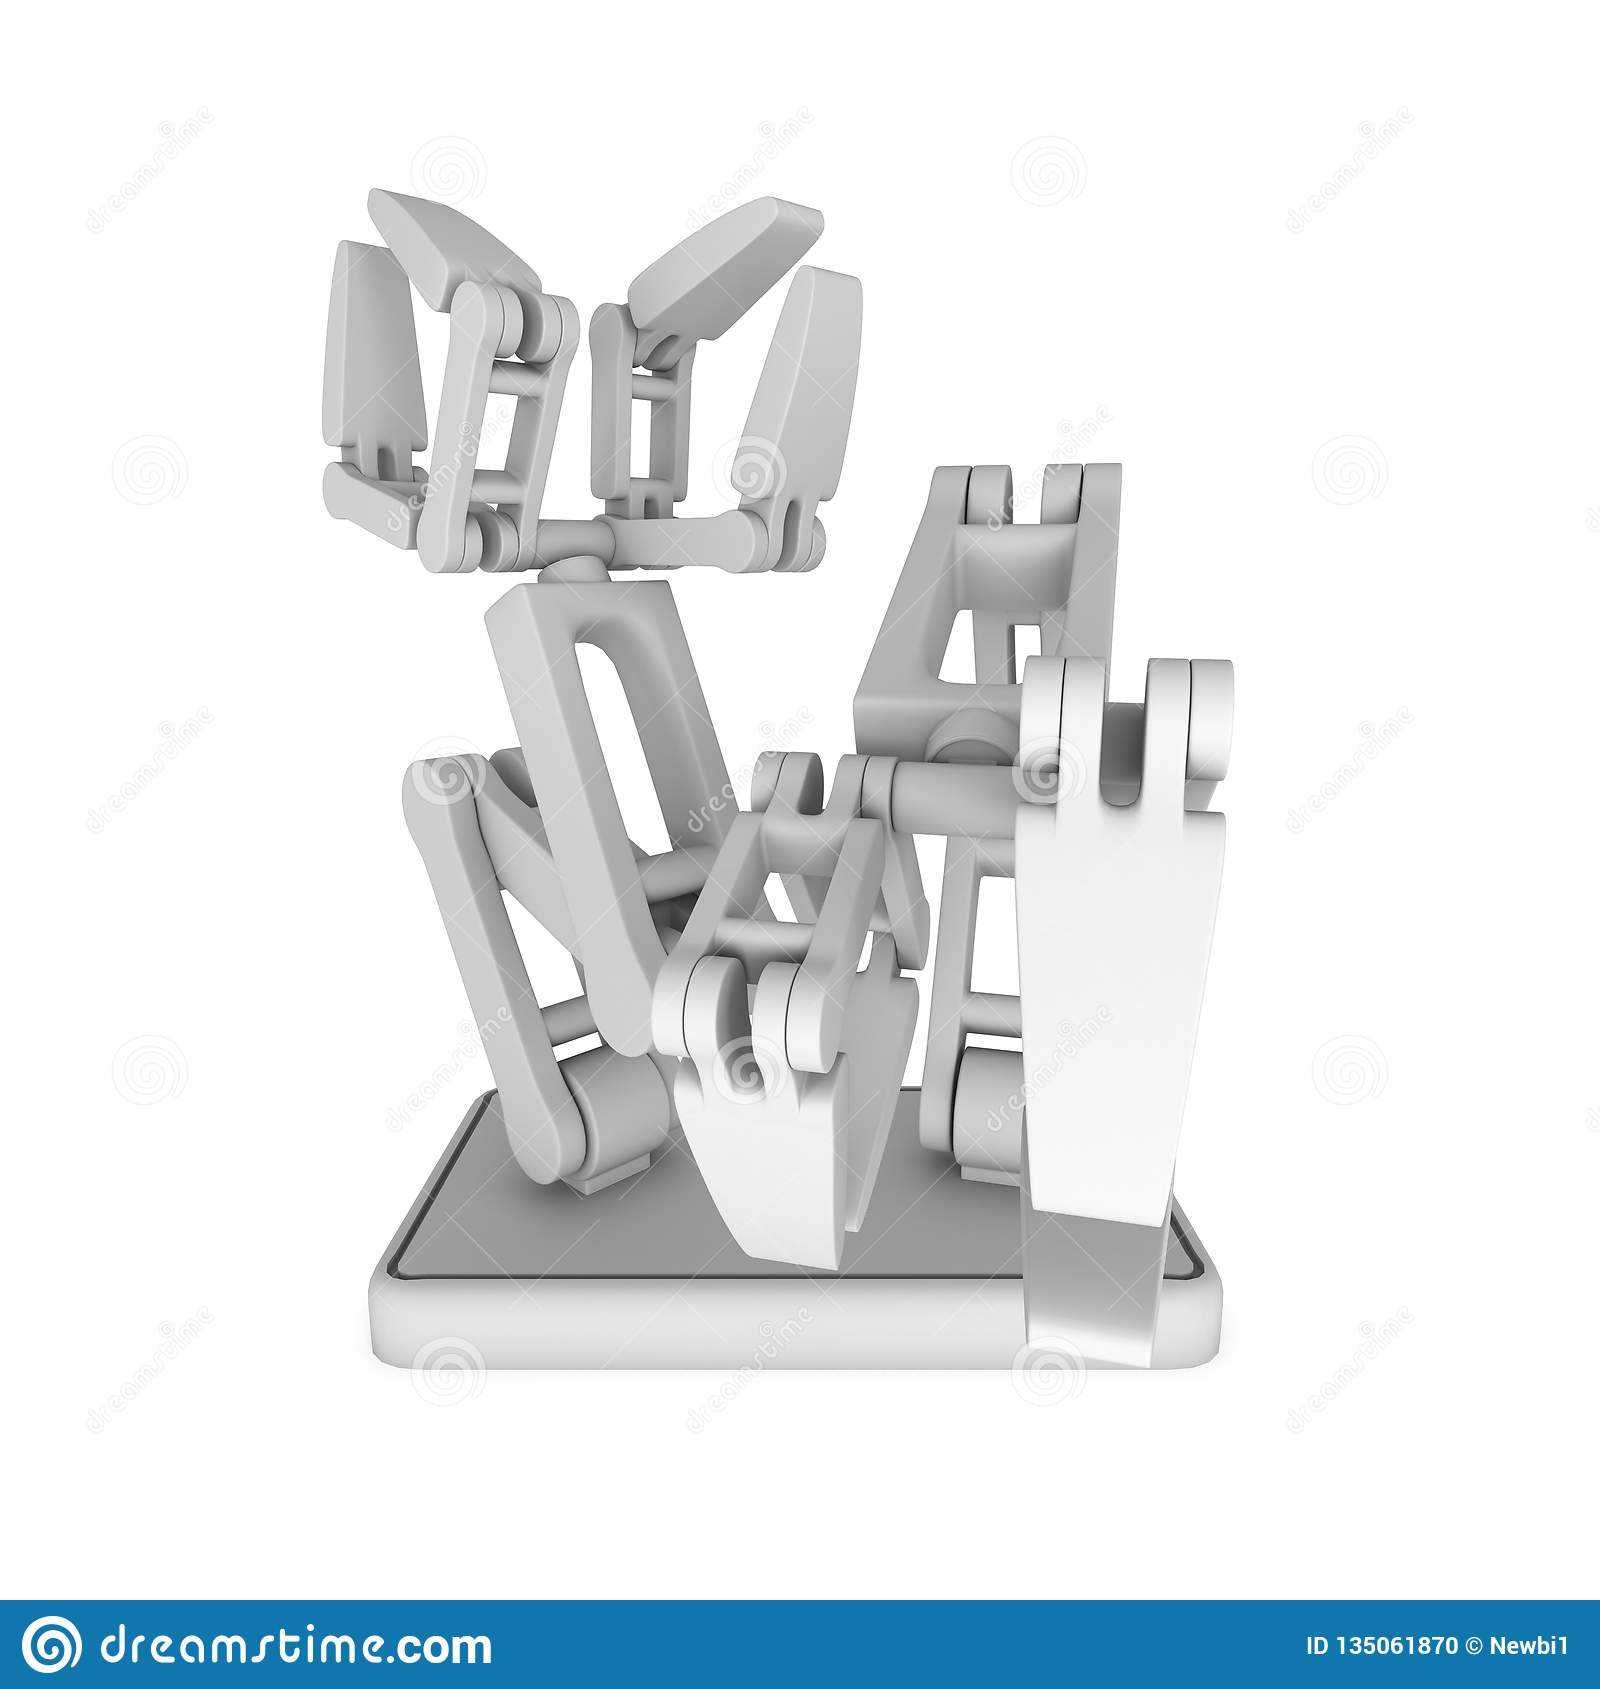 Robotic arm 3d stock illustration  Illustration of control - 135061870